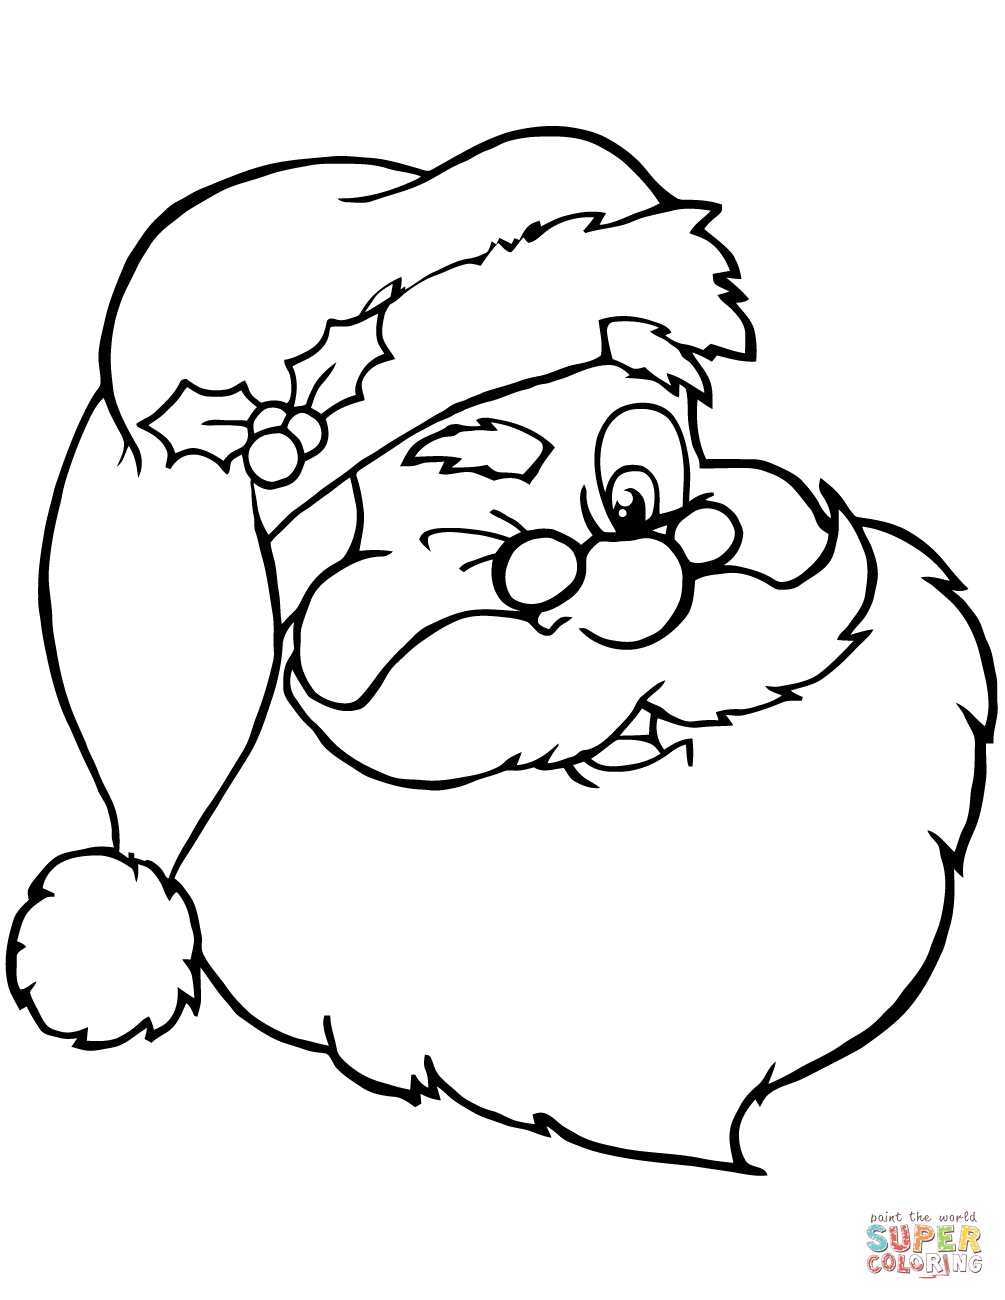 Santa Claus Head Coloring Pages With Winking Page Free Printable